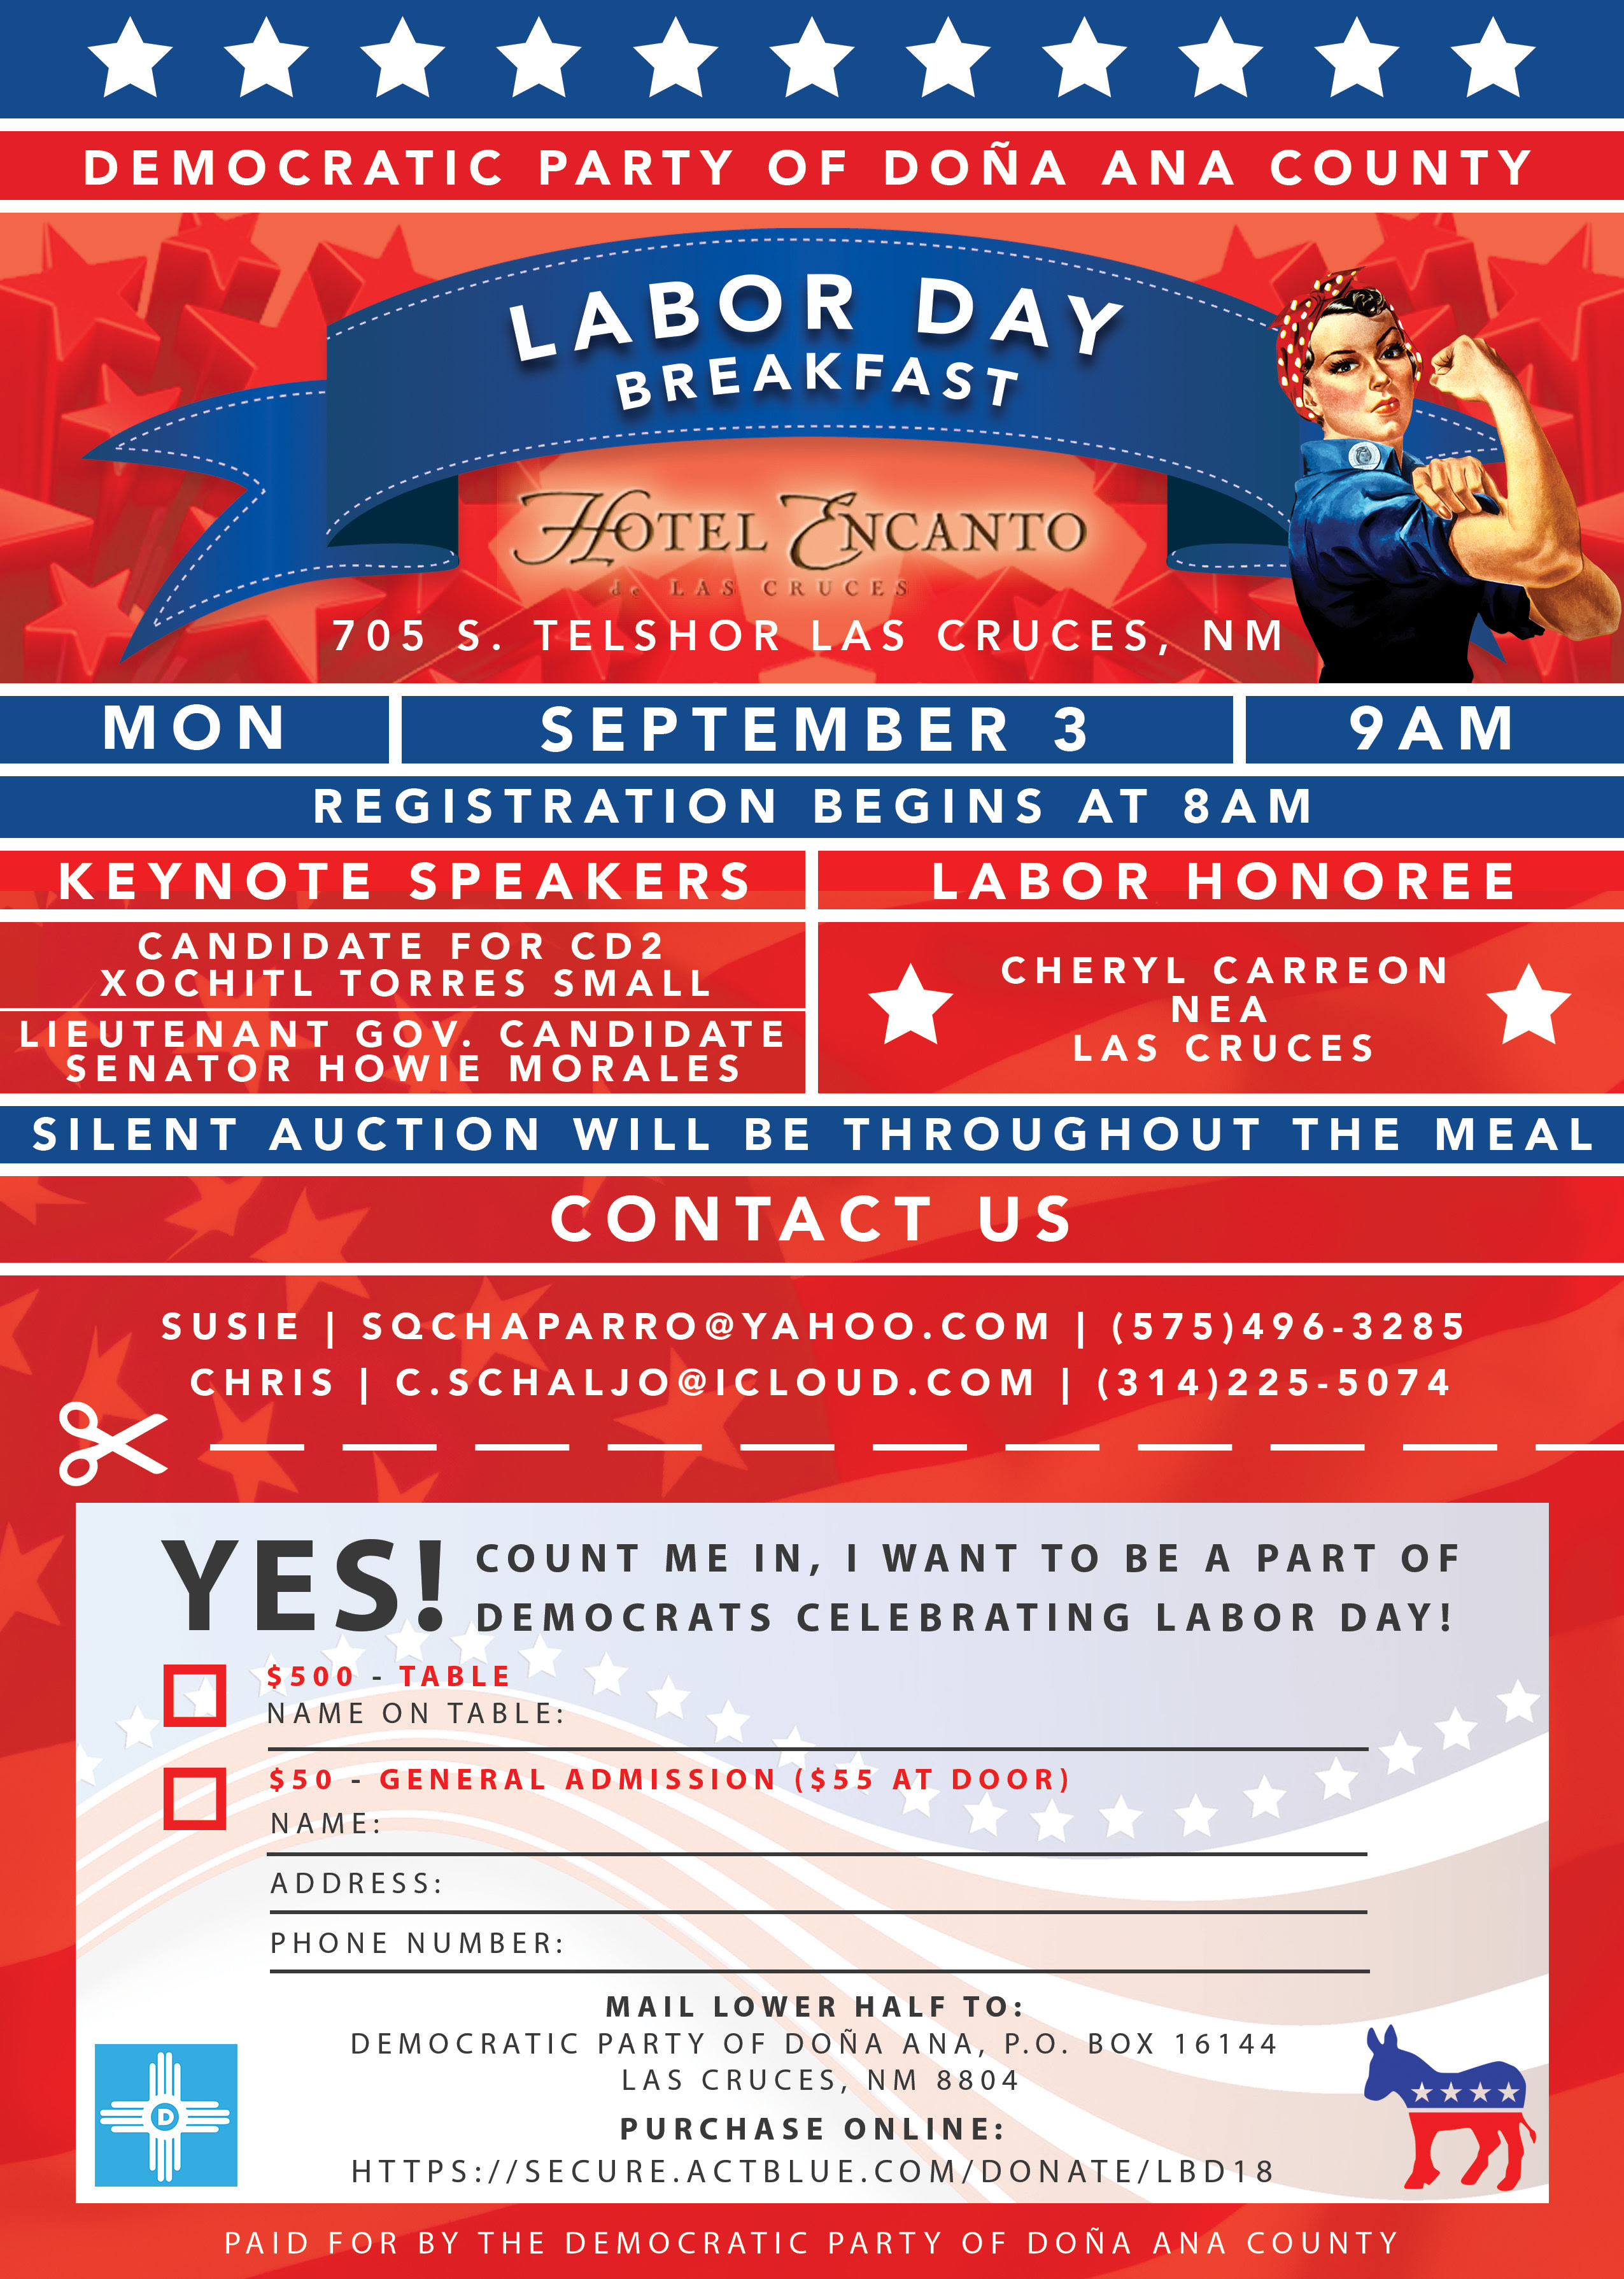 DPDAC Labor Day Breakfast @ Hotel Encanto | Las Cruces | New Mexico | United States